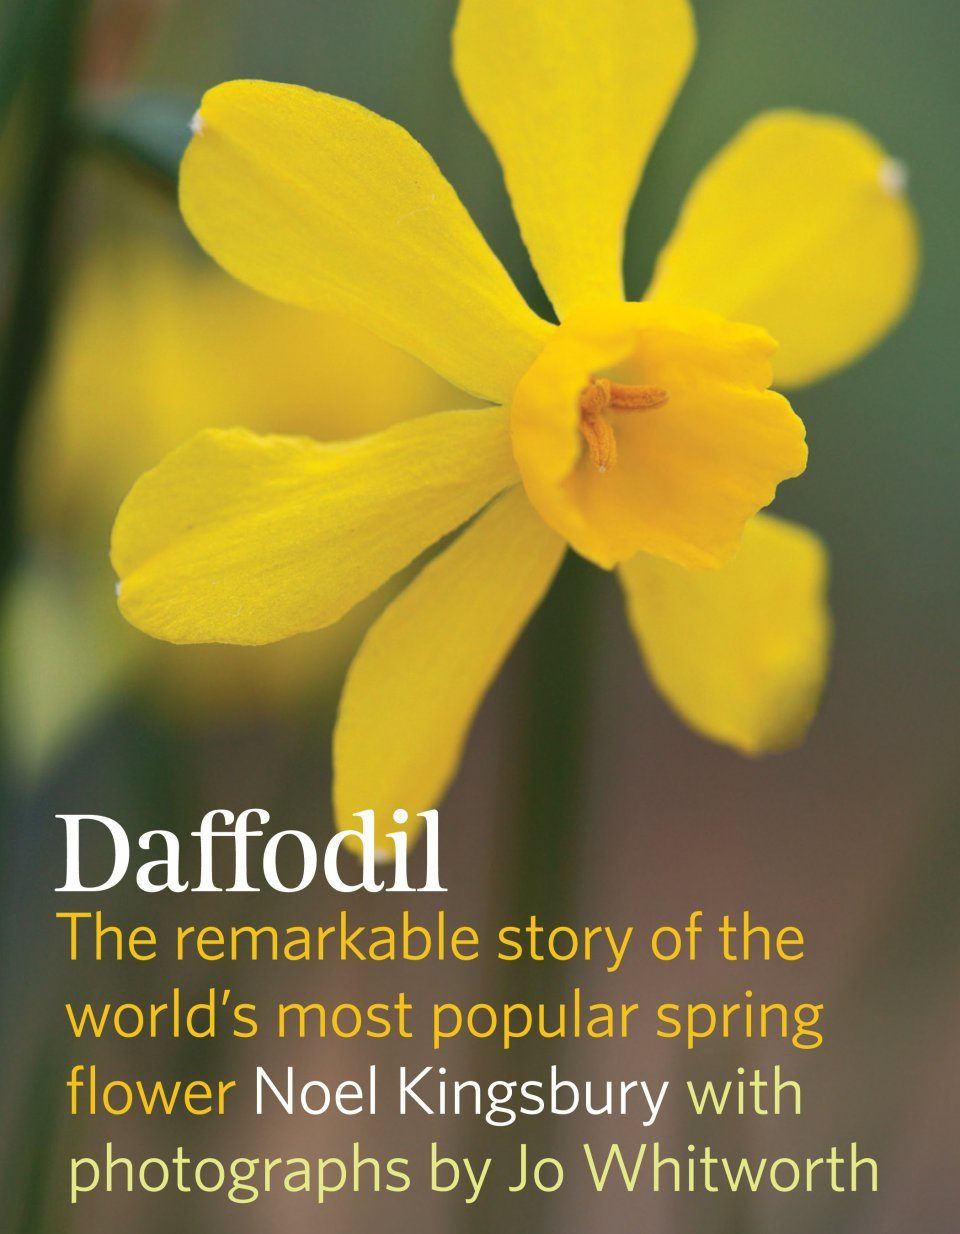 Daffodil: The Remarkable Story of the World's Most Popular Spring Flower